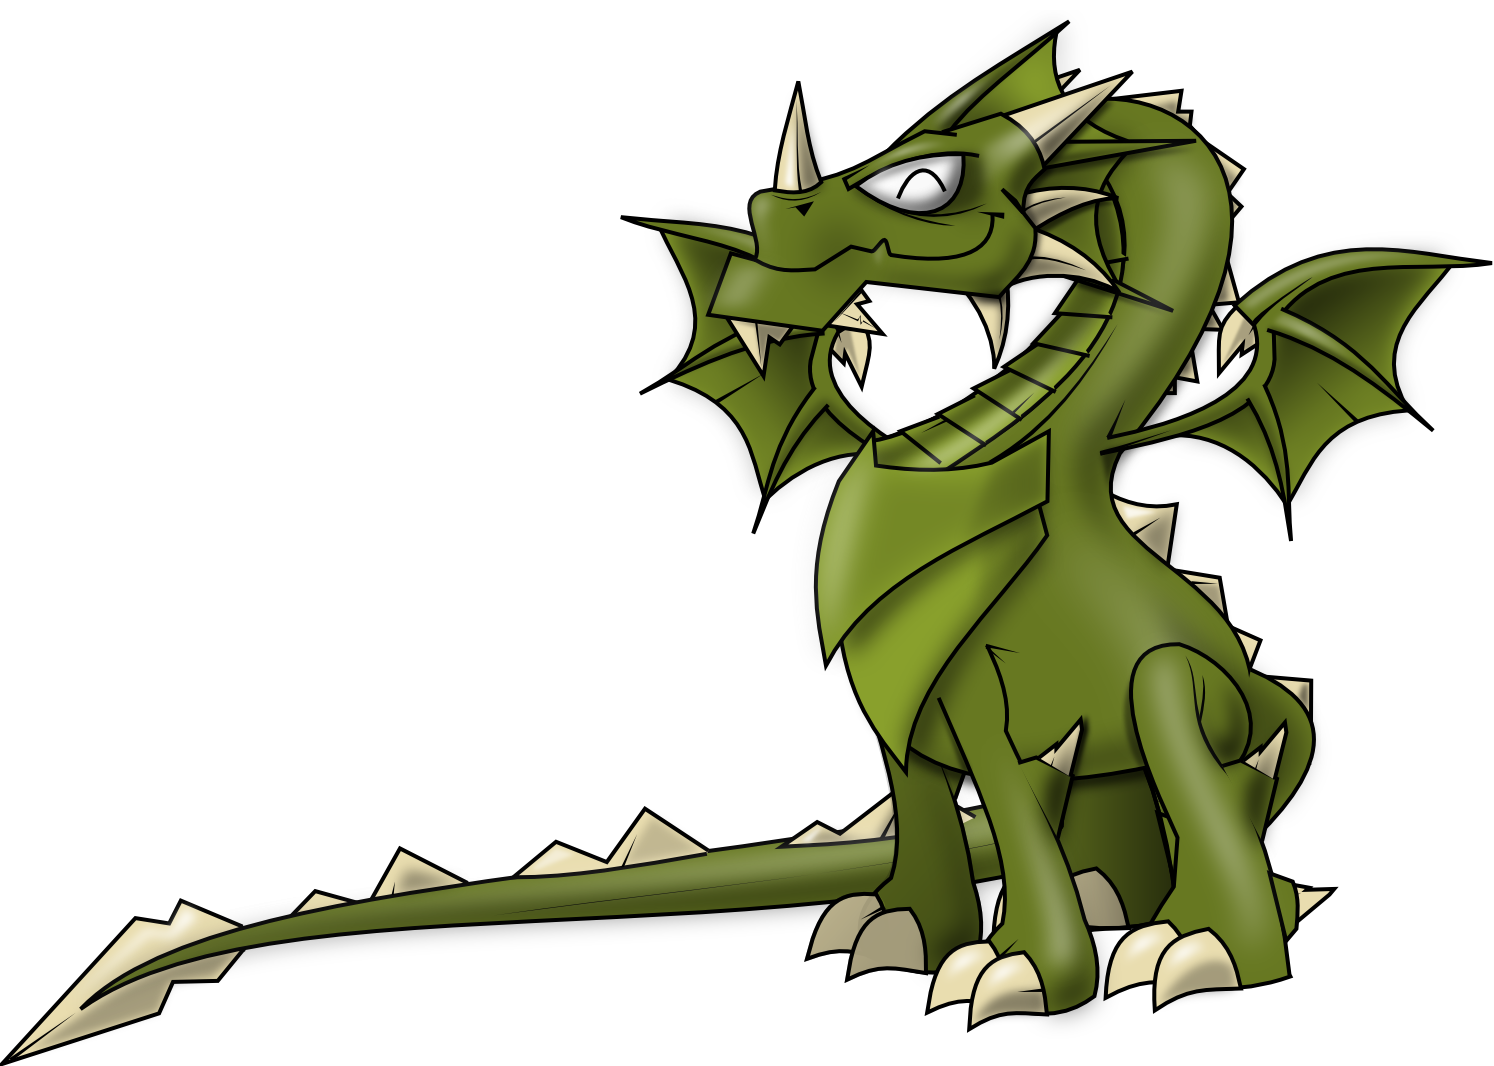 Little Dragon clipart public domain Clipart and Cliparts Others Green